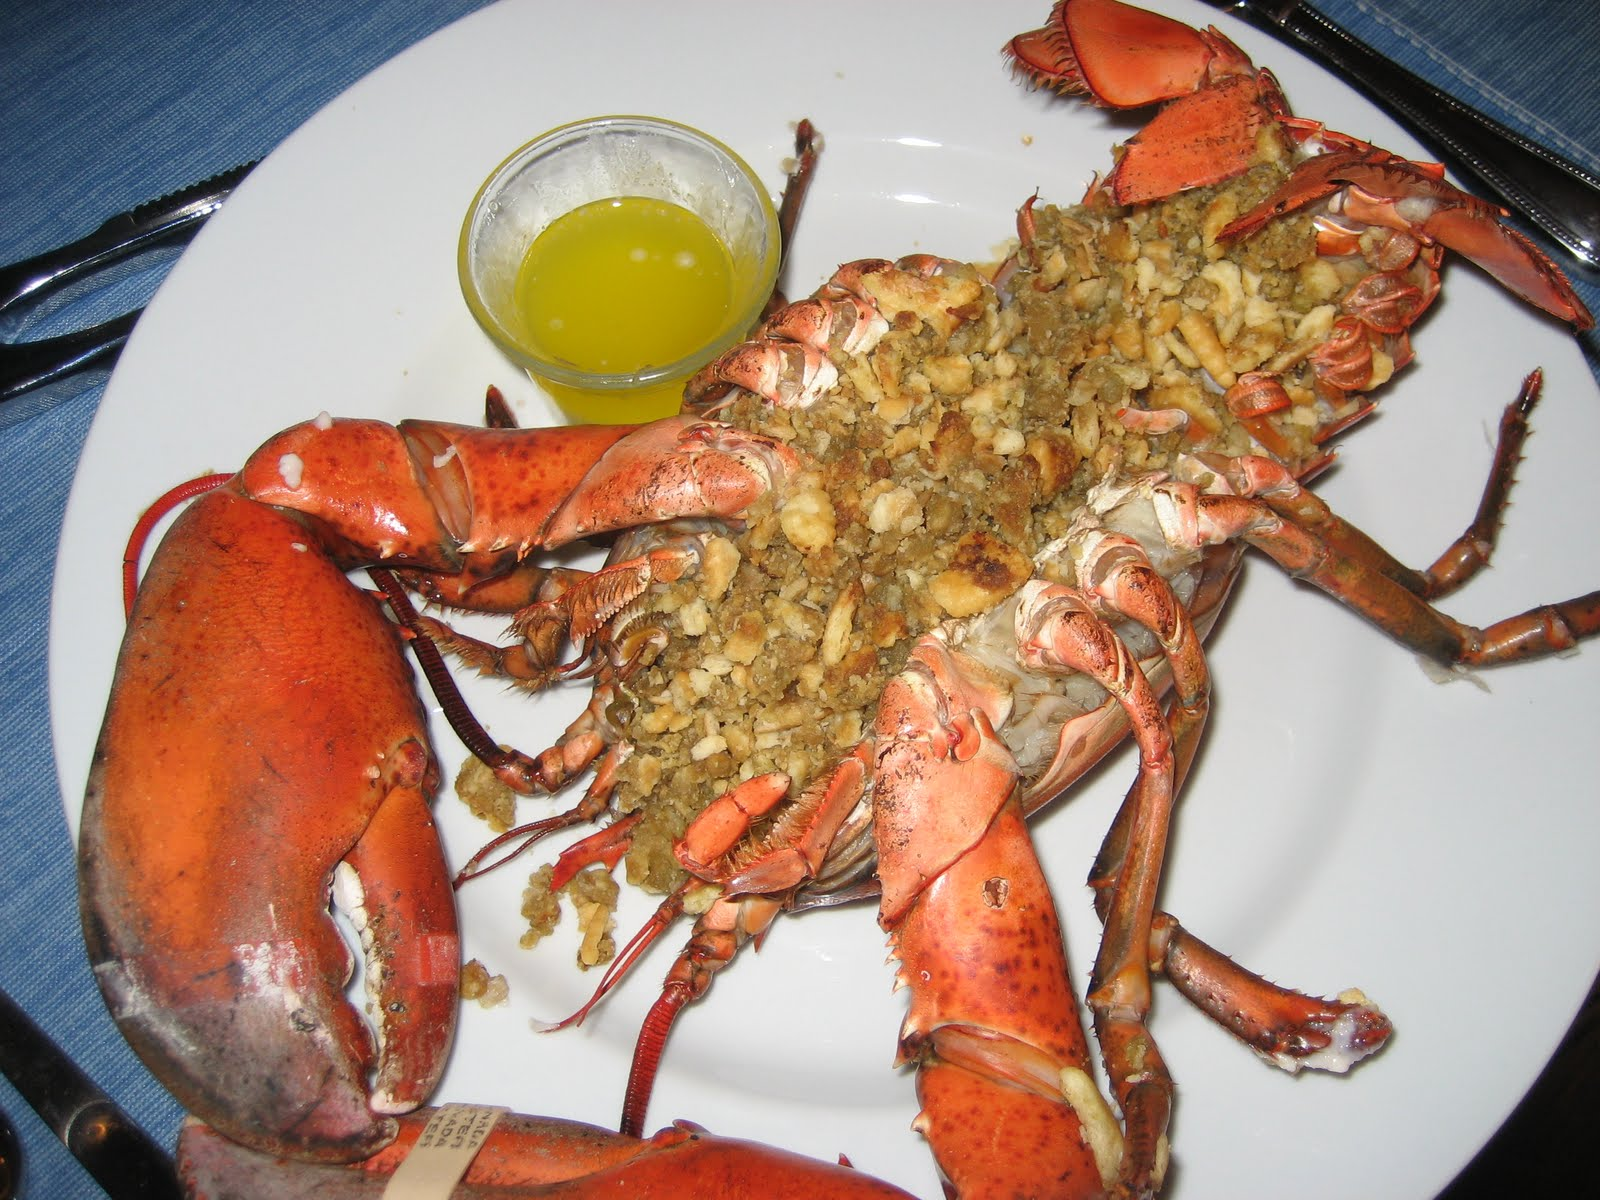 ... Tasty from My Kitchen: New England Style Baked Stuffed Lobster